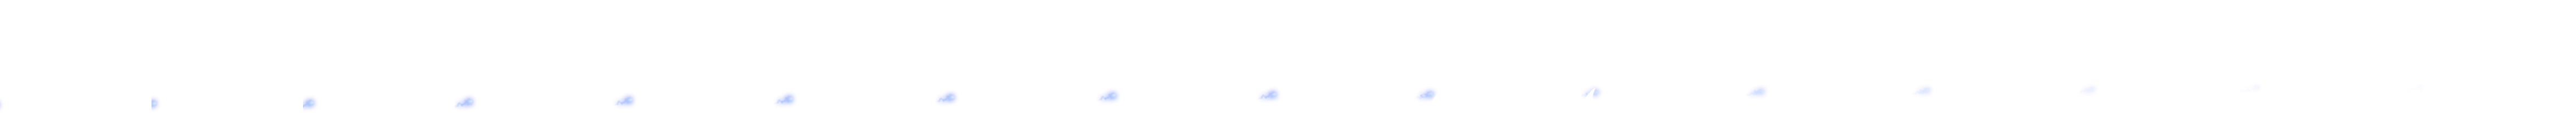 https://images.neopets.com/dome/arenas/008_3d3d828b3e_cosmicdome/cosmic_dome_comet3.png